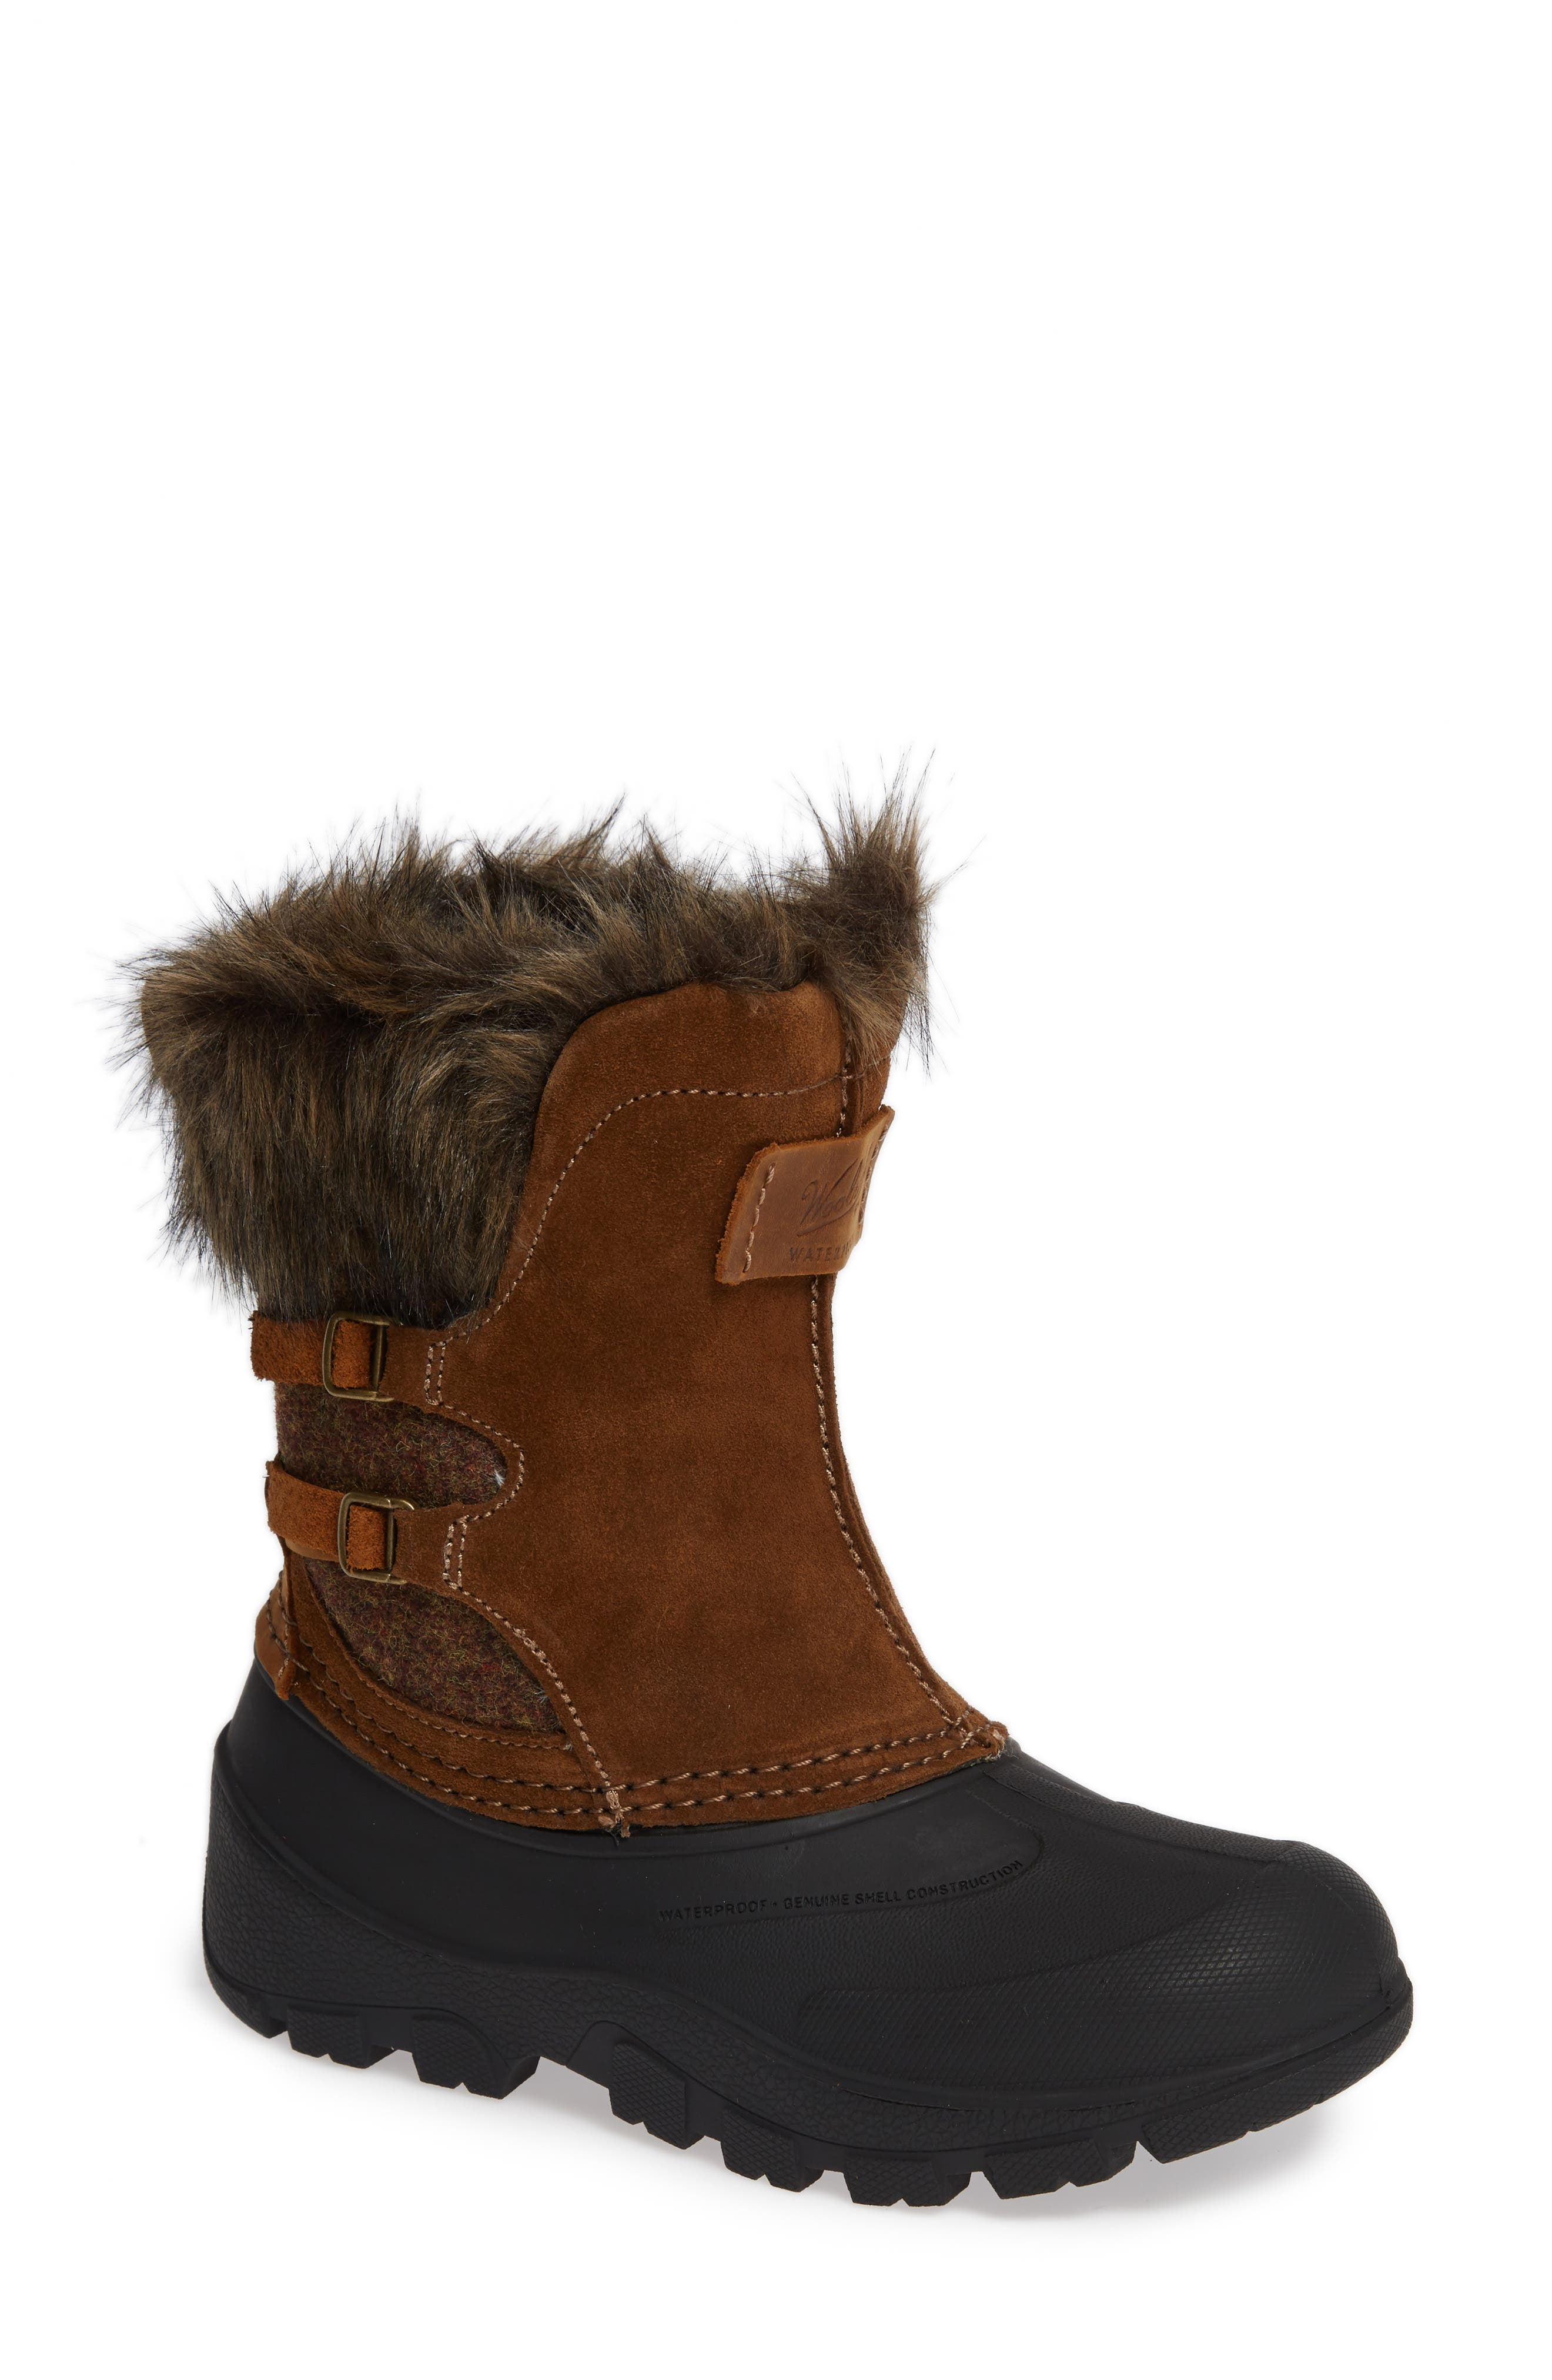 Woolrich Icecat Ii Fully Woolly Waterproof Insulated Winter Boot, Brown